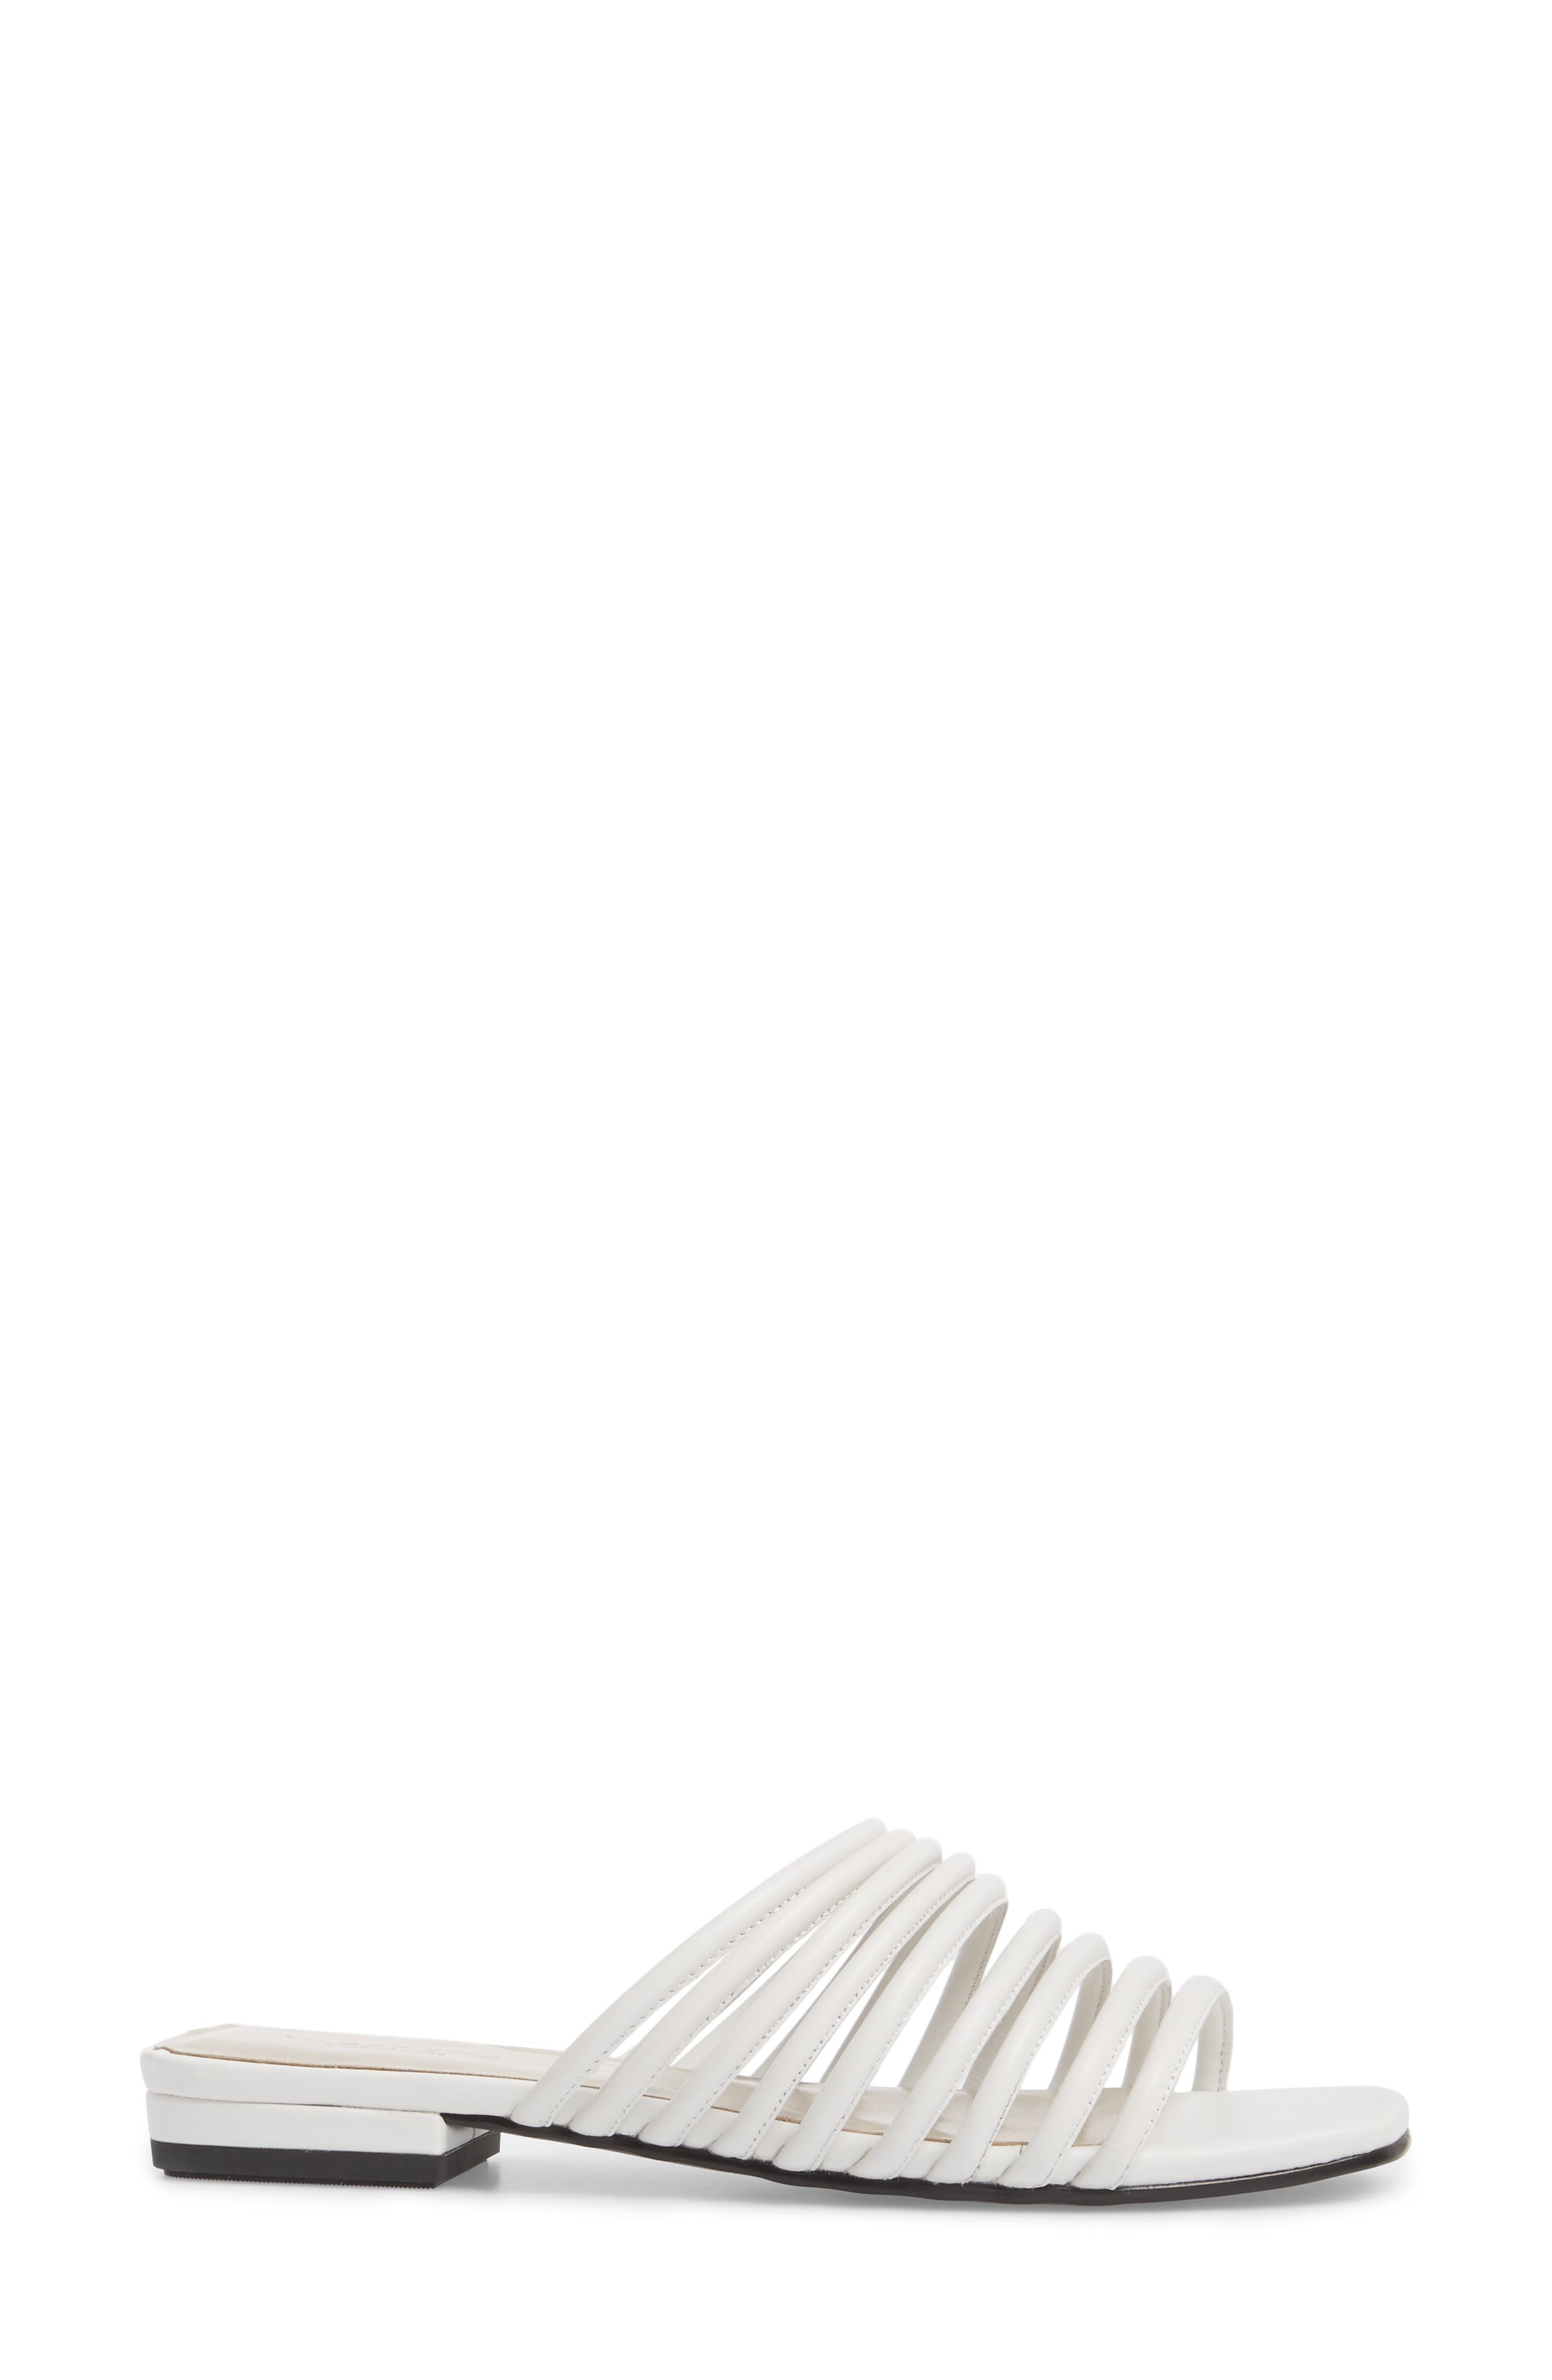 Becky Slide Sandal,                             Alternate thumbnail 3, color,                             White Leather